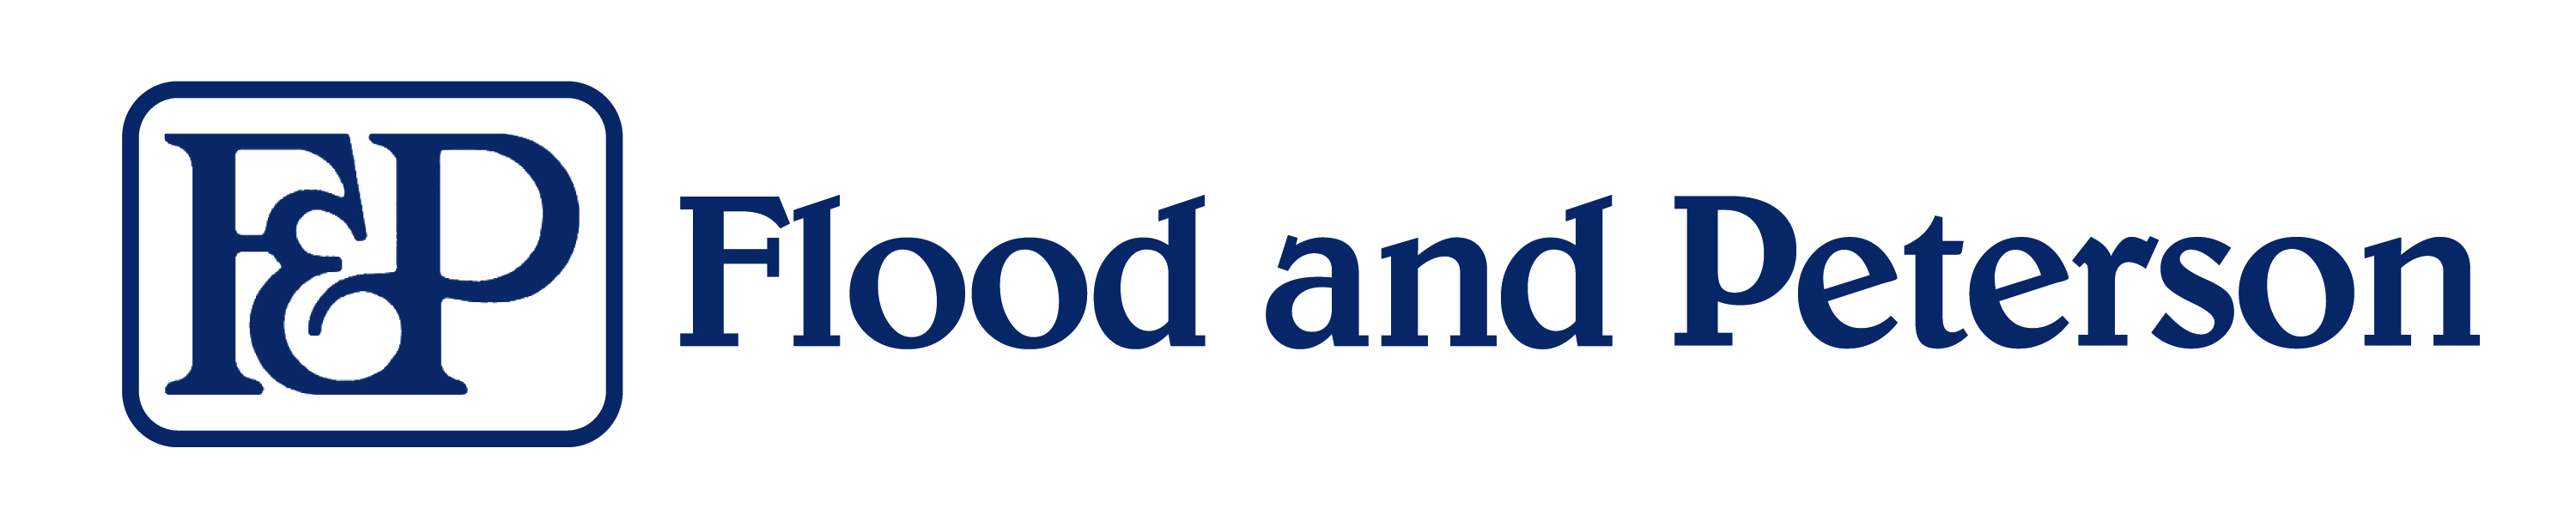 flood and peterson logo